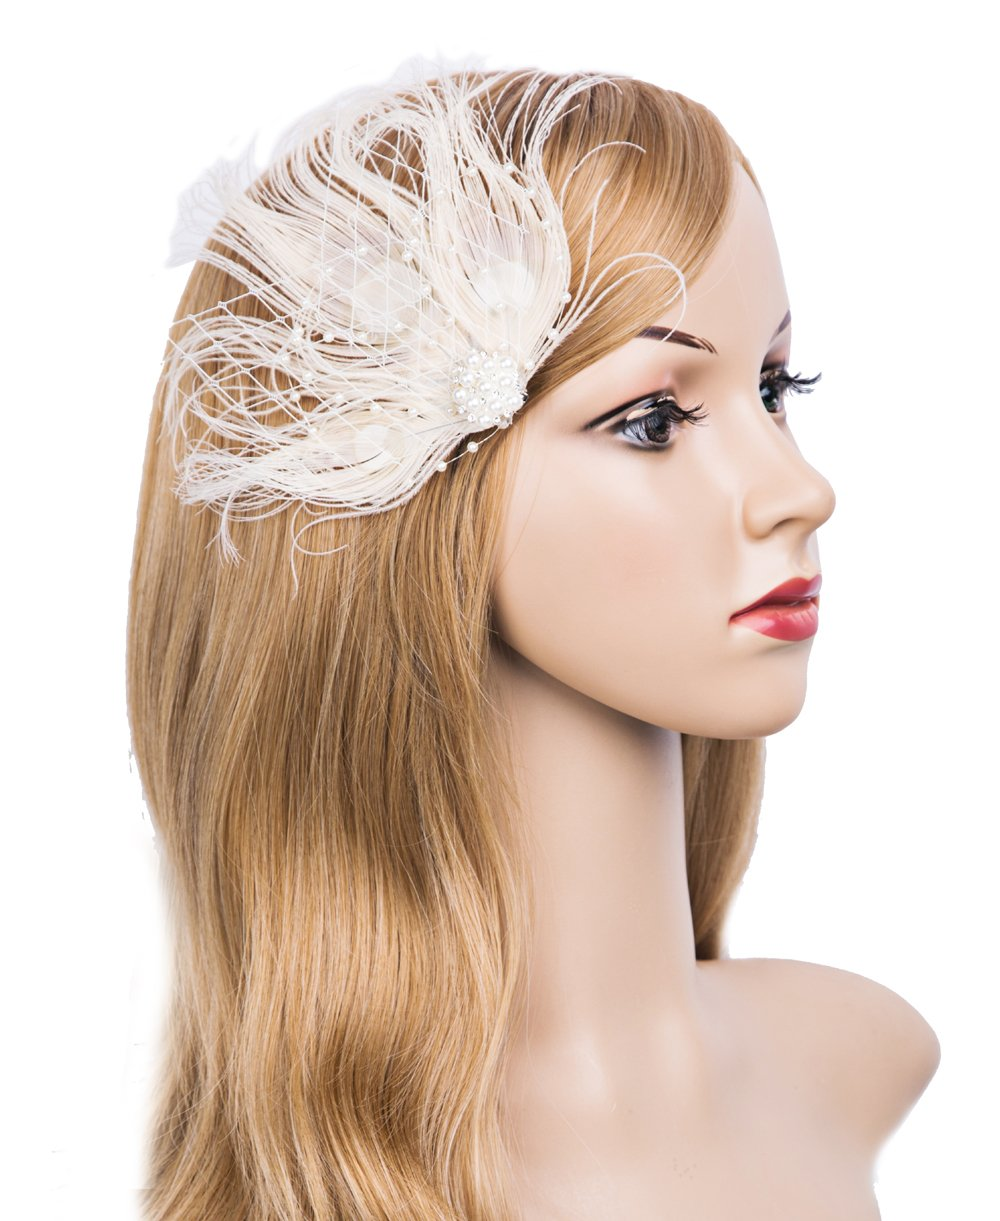 Cizoe 1920s Gatsby Acessories Peacock Costume Hair Clip With Feather Pearl 1920 Flapper Headpiece (White) by Cizoe